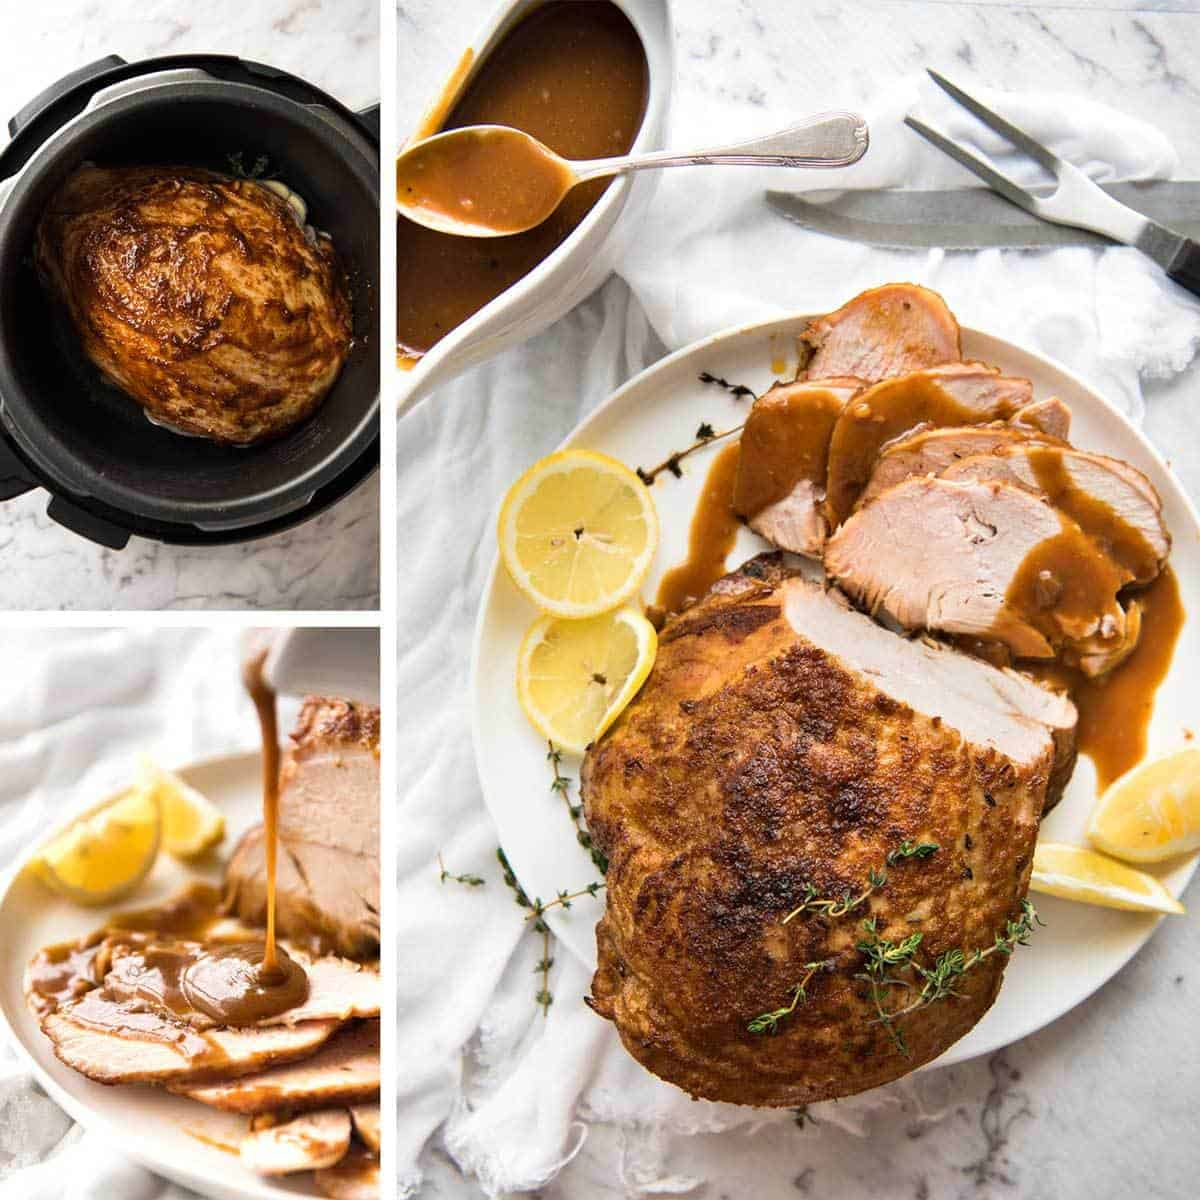 Slow Cooker Turkey Breast - the safest and best way to make MOIST turkey breast without brining is with your crockpot! www.recipetineats.com